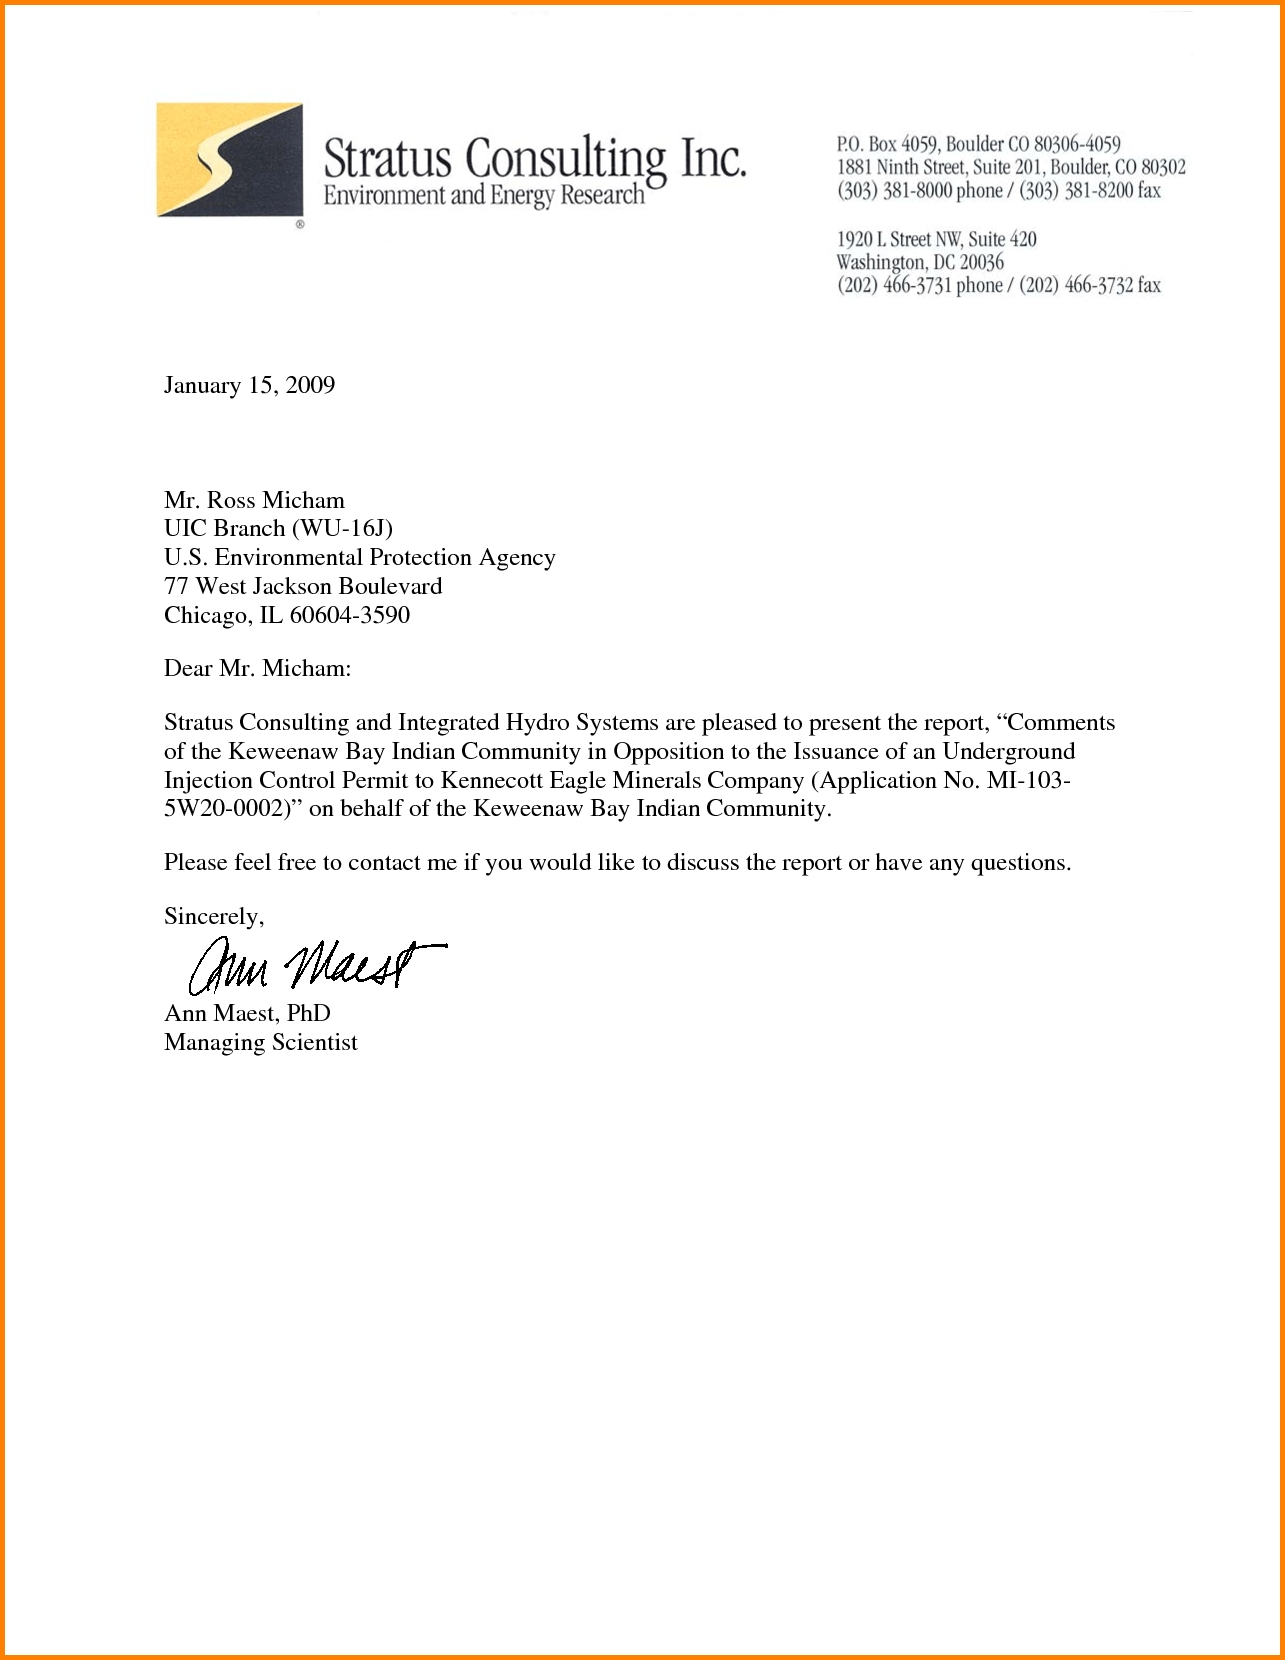 Nice Business Letter Format Template With Letterhead About Formal with Formal Letter Format With Letterhead 20046